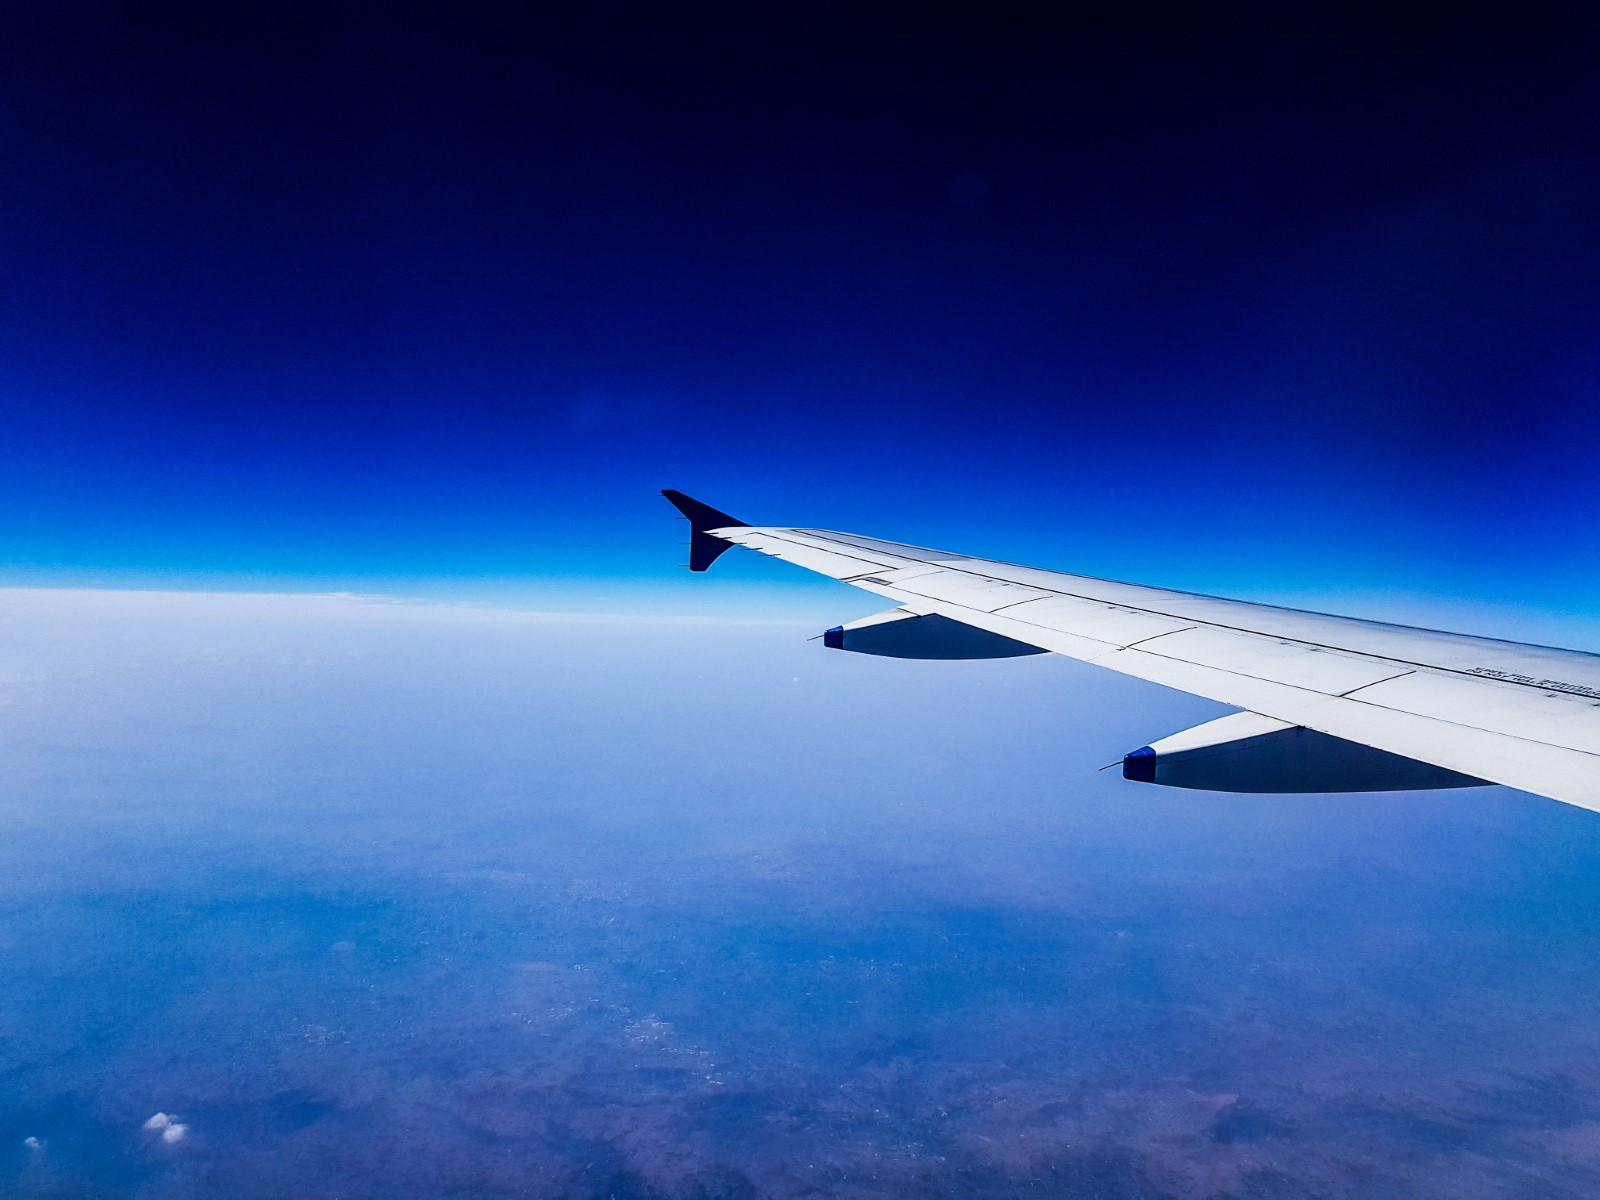 Passenger Jet Wing in Flight